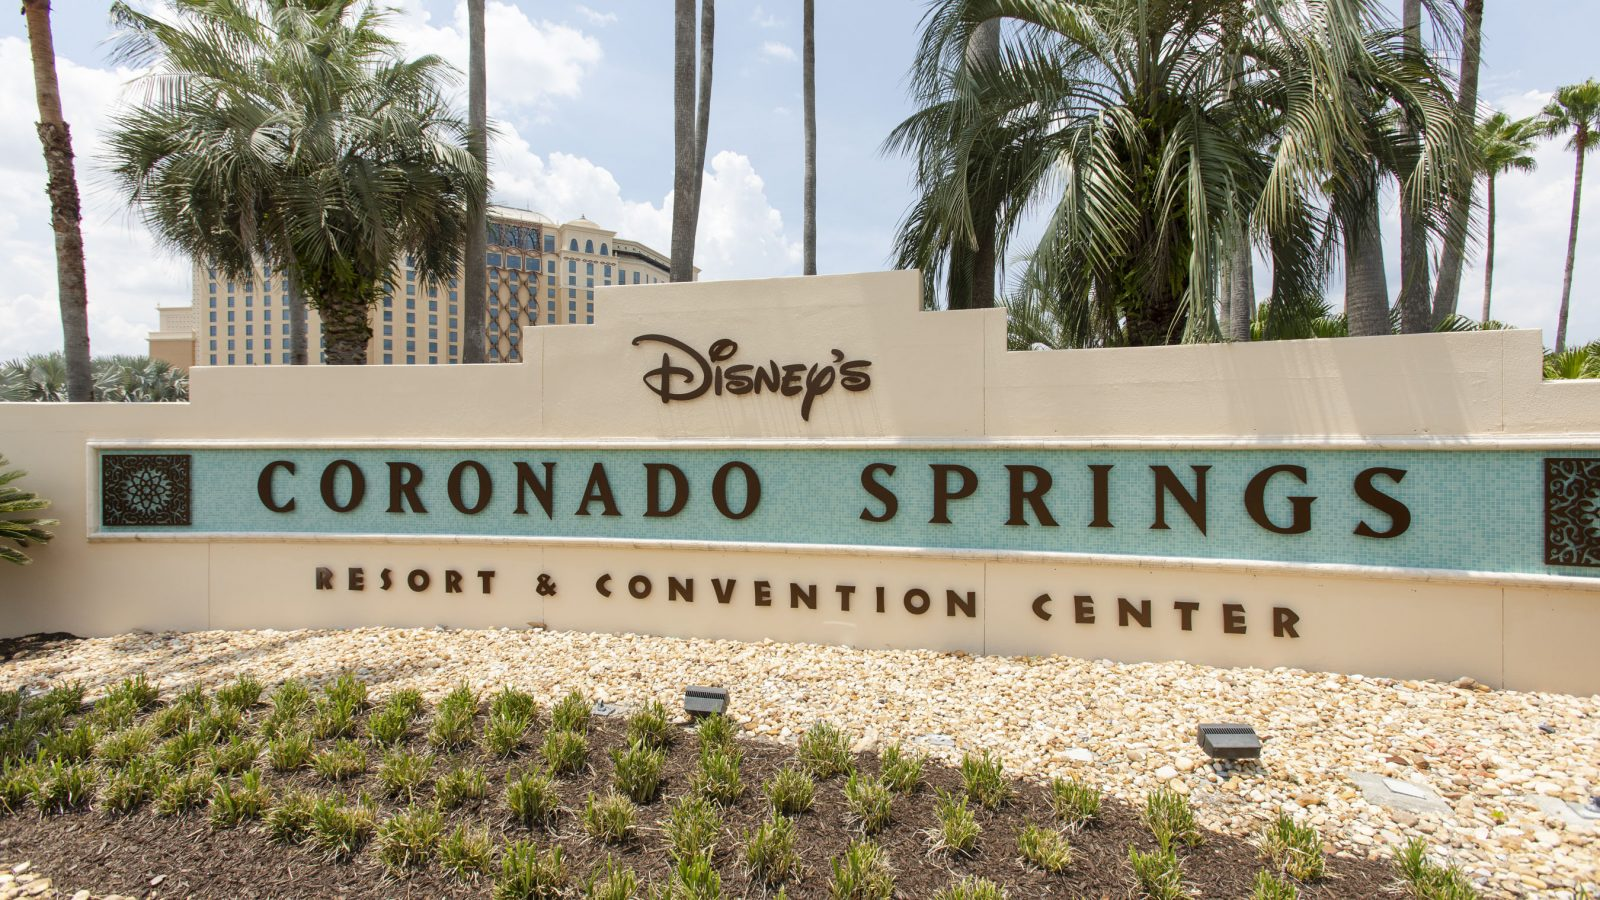 Disney Coronado Springs Resort sign